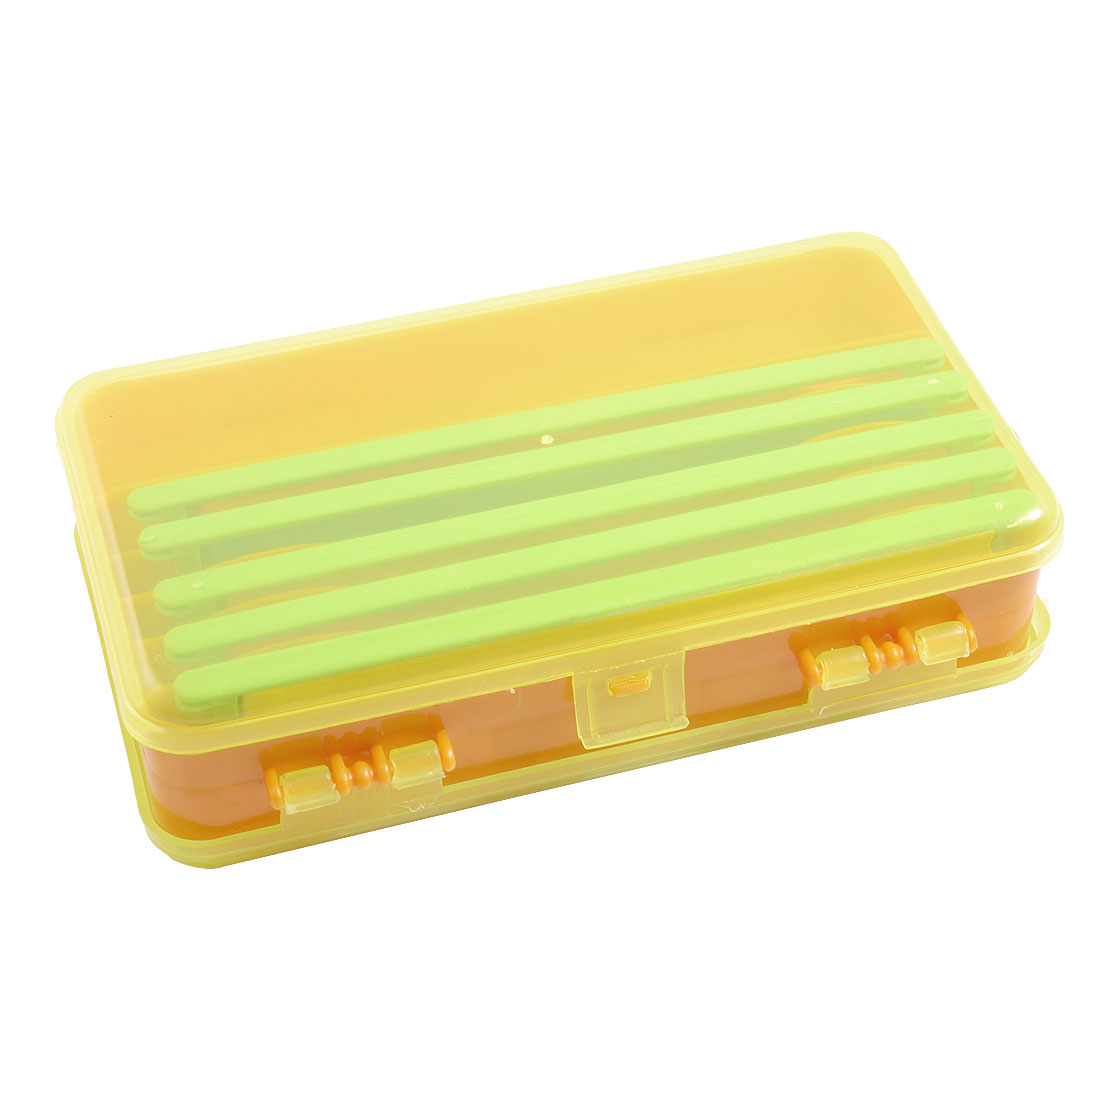 Unique Bargains Unique Bargains Double Sides Fishing Tackle Box Hook Lure Case with 5 Line Winders by Unique-Bargains